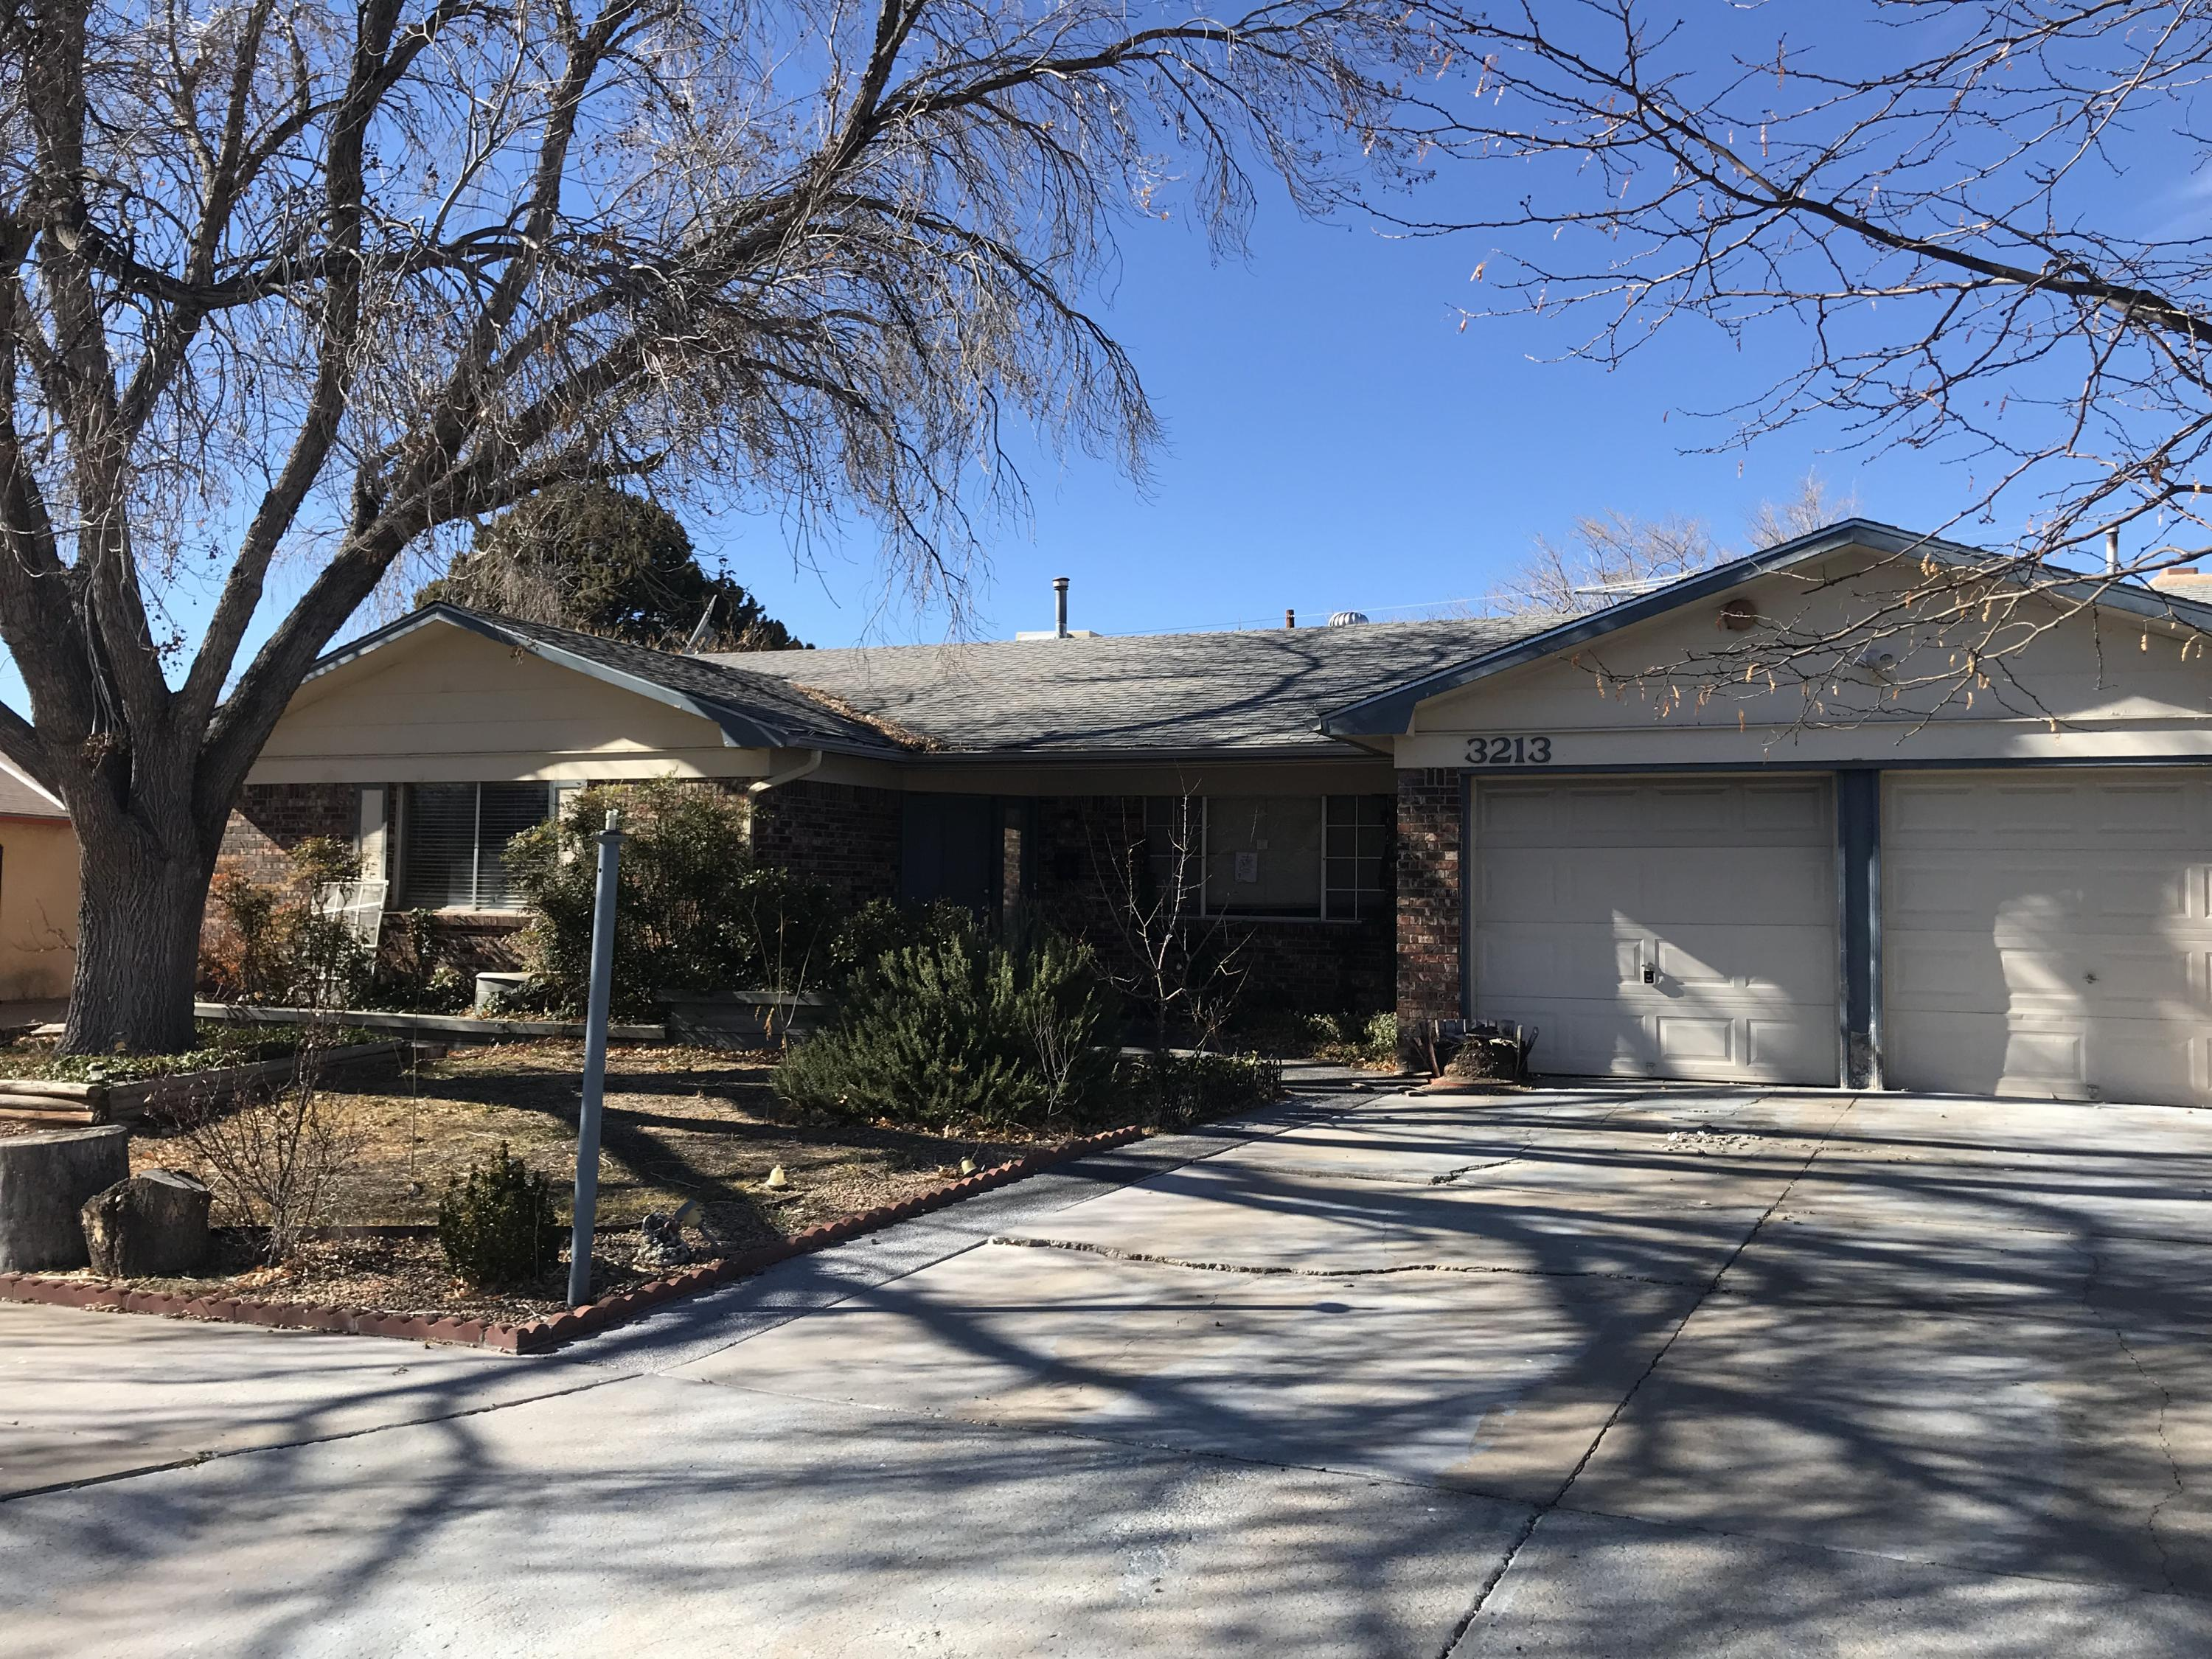 3213 NE Lucerne Street, Albuquerque Northeast Heights, New Mexico